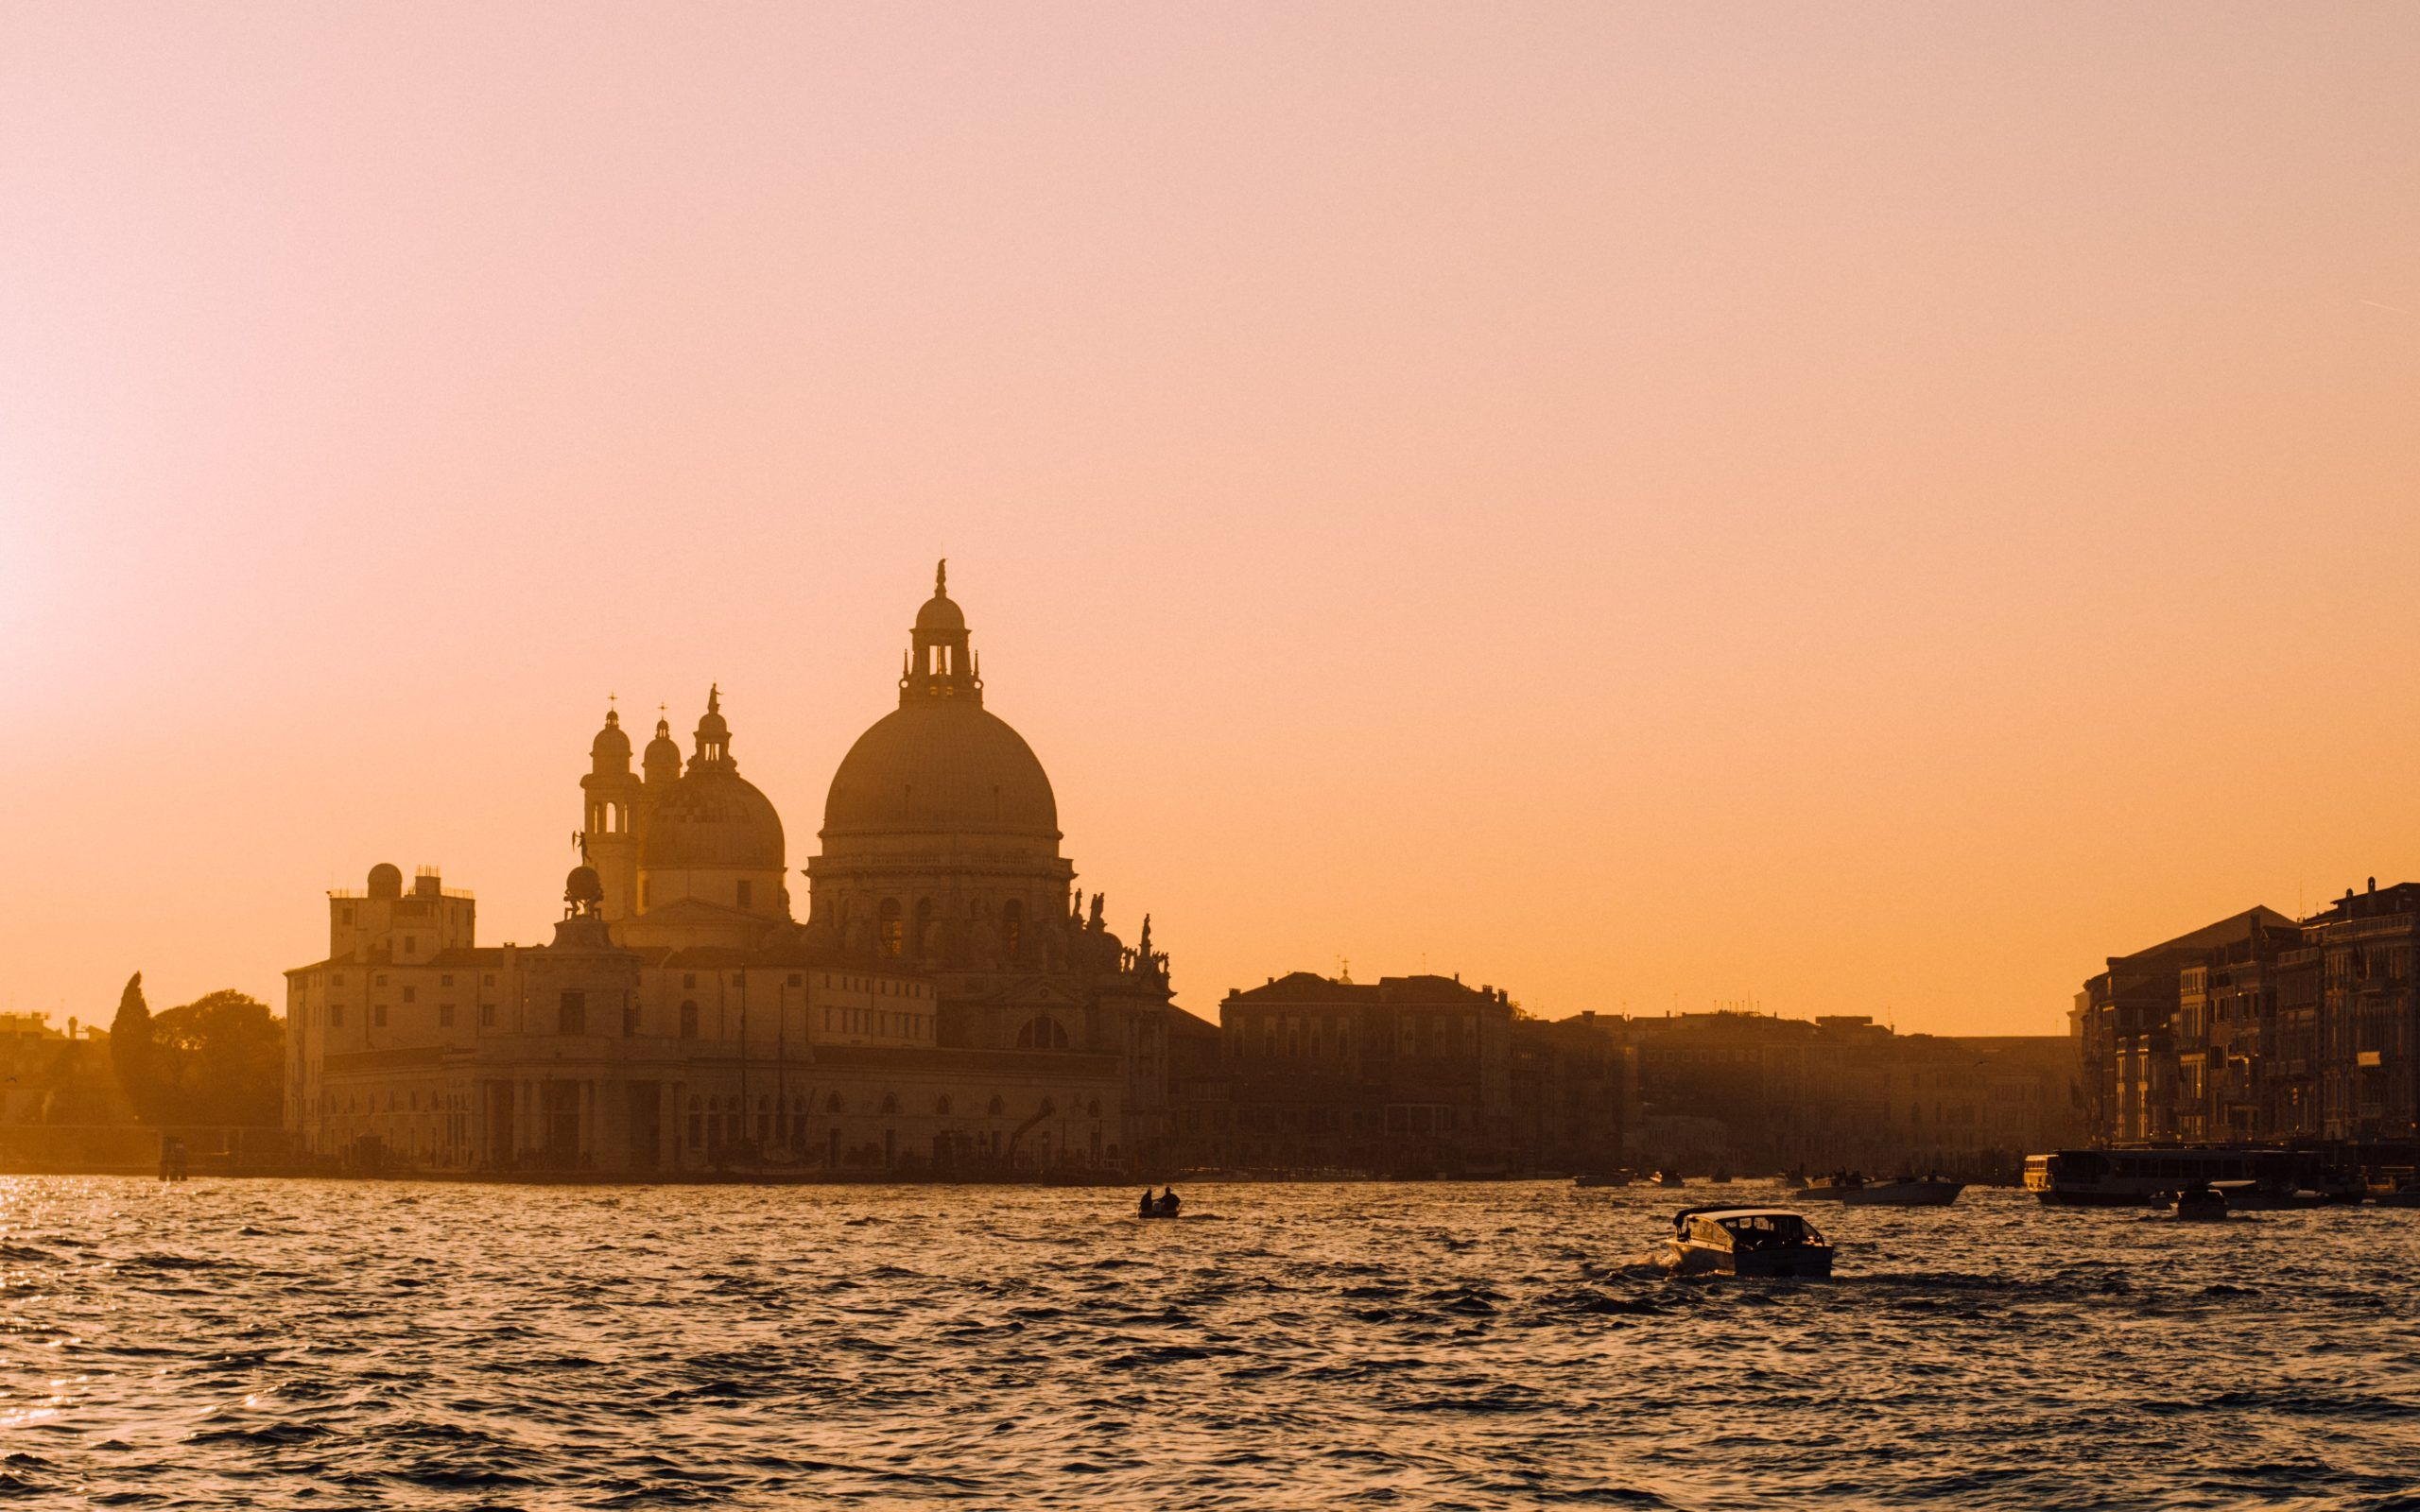 The golden hour in Venice with the view of Basilica della salute